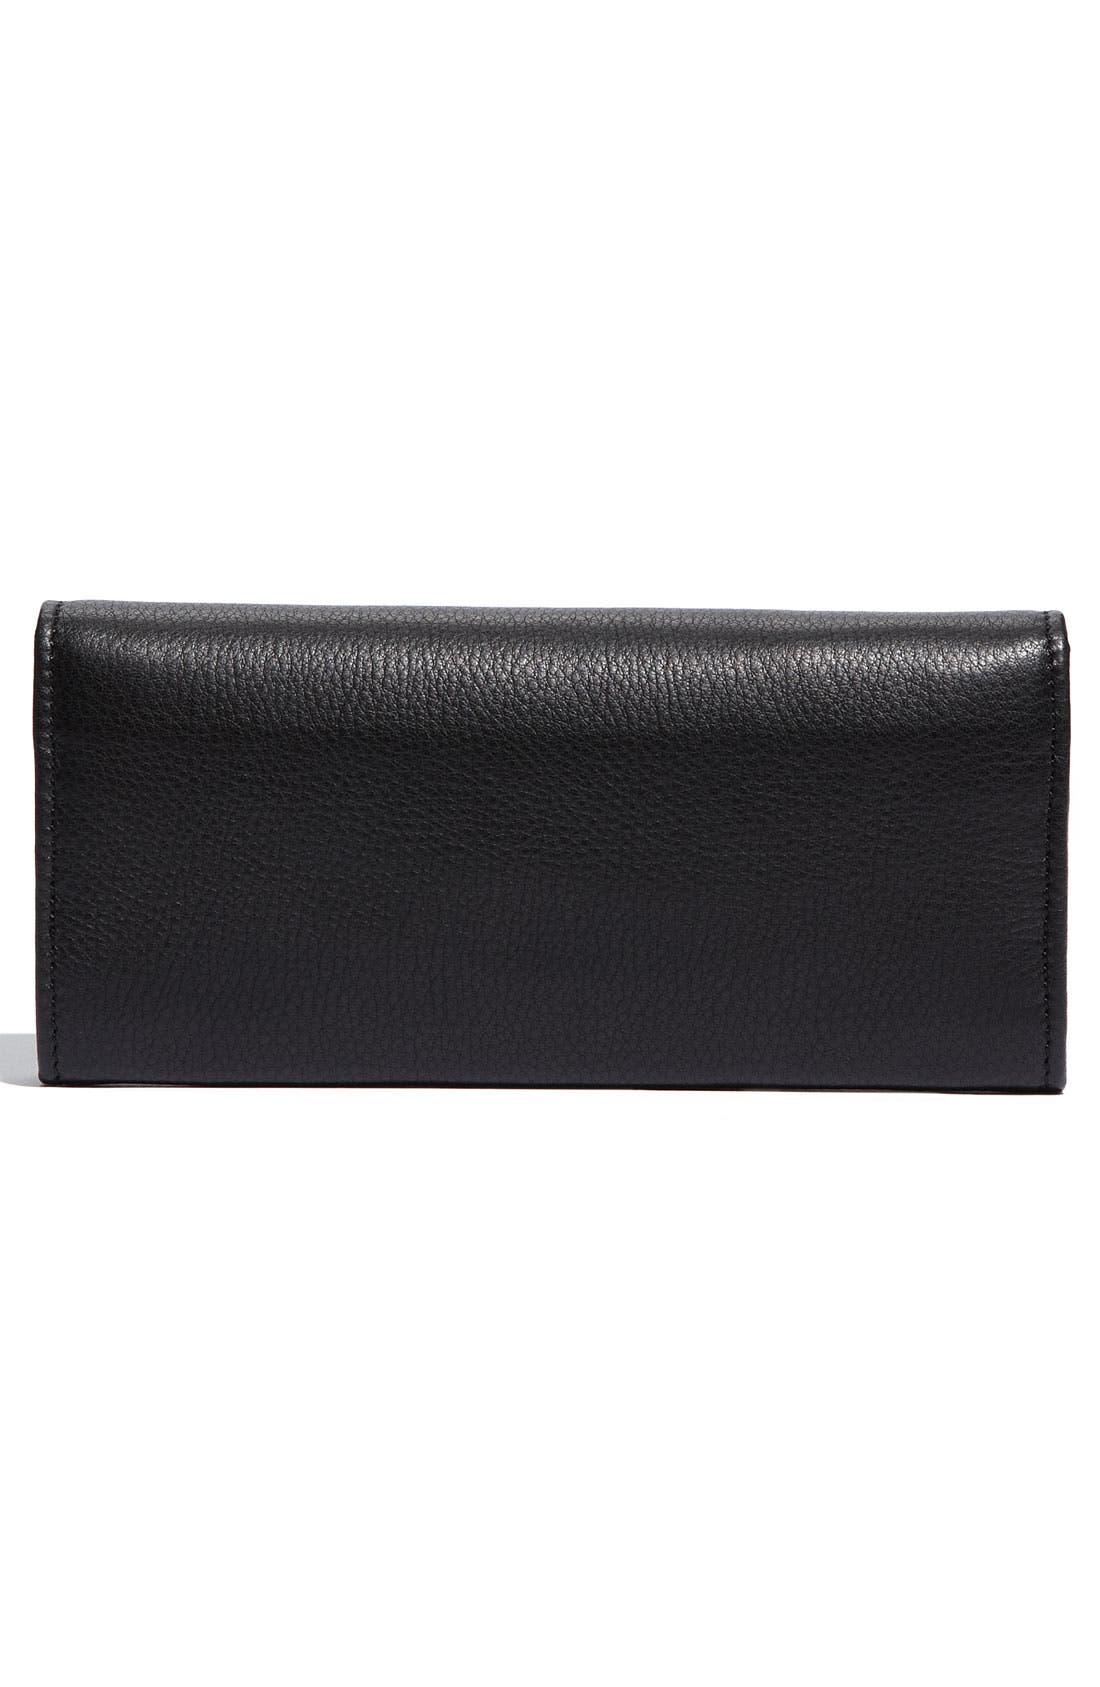 Alternate Image 3  - Jimmy Choo 'Reza' Calfskin Leather Wallet